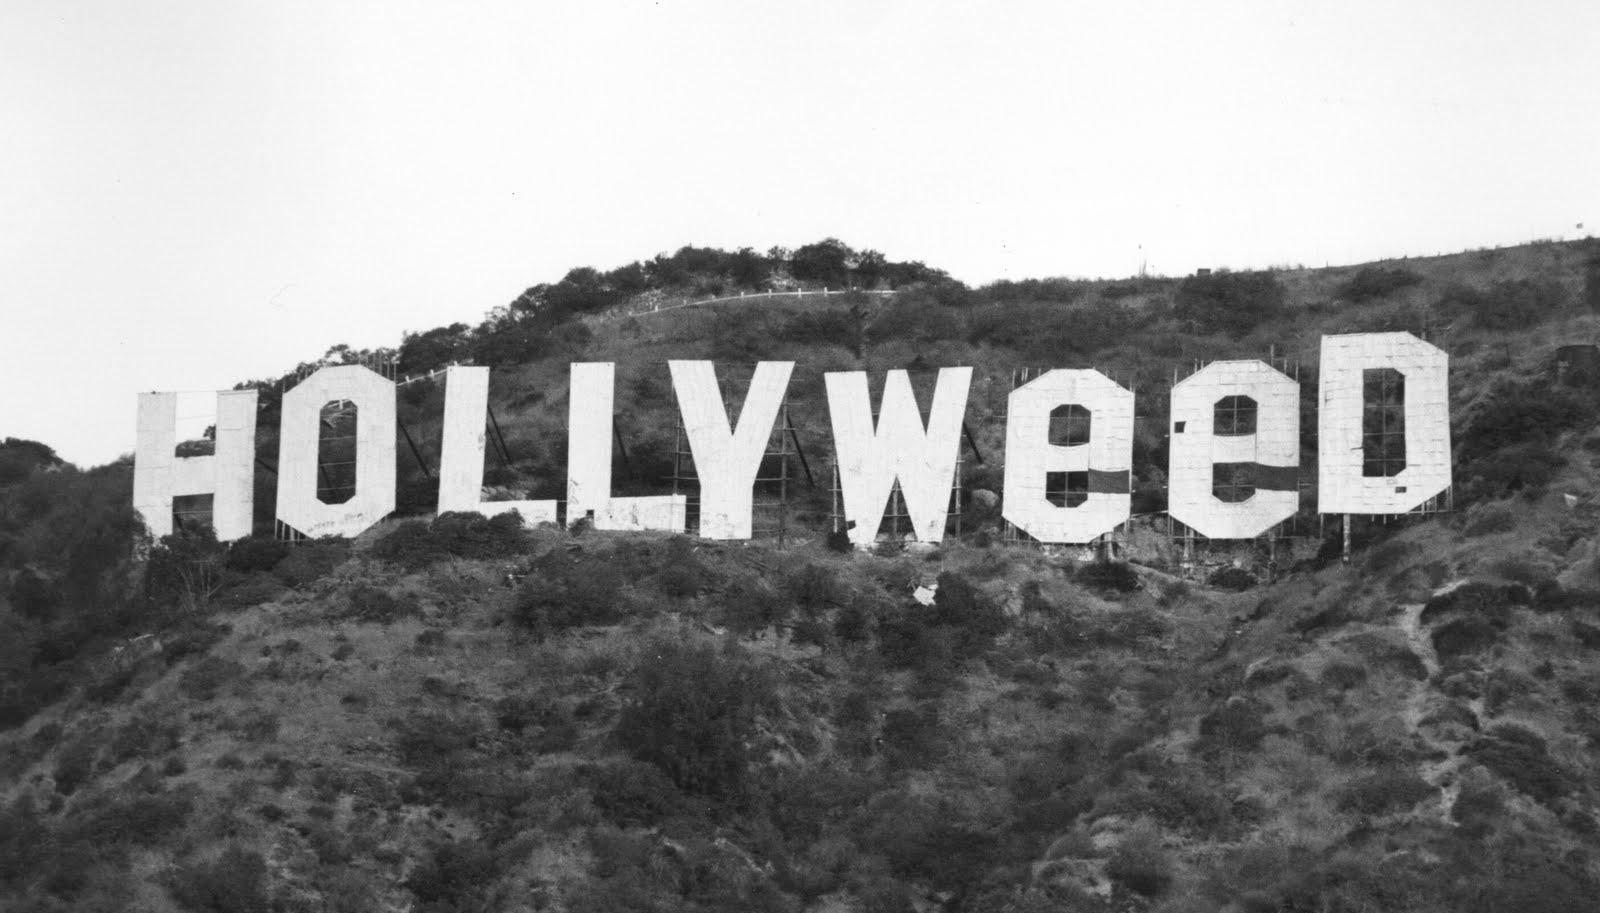 The 'HOLLYWeeD' sign - 1976